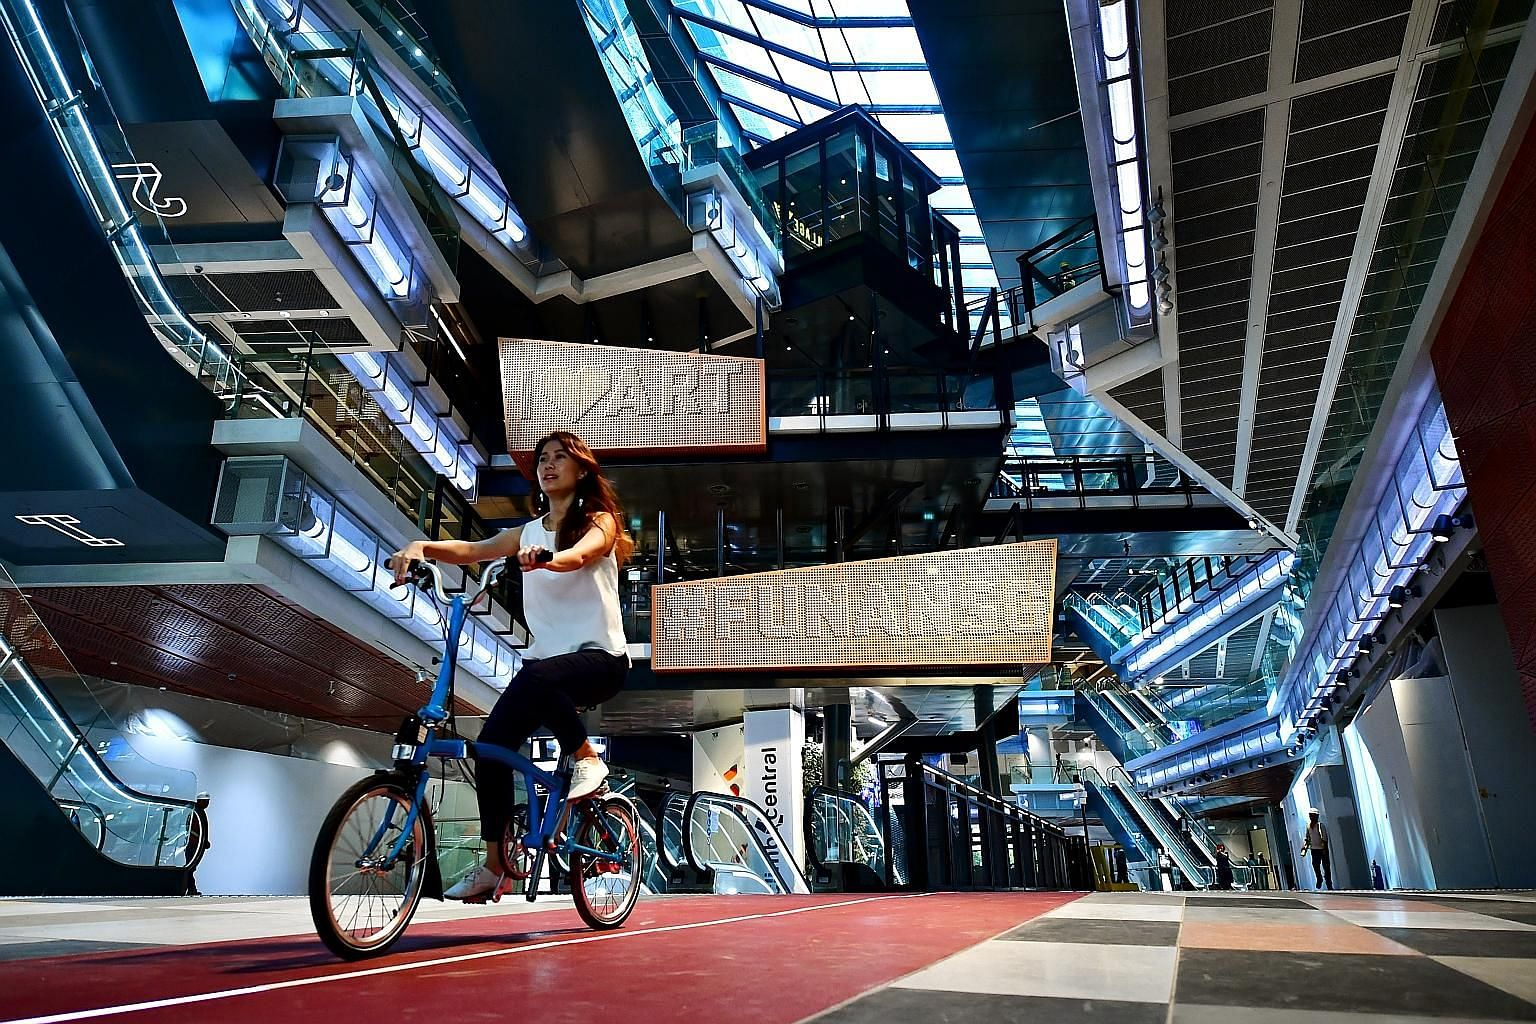 Ms Fionna Lee (above right), 26, a senior executive at CapitaLand, cycling on the path in the new Funan mall, which opens next month.